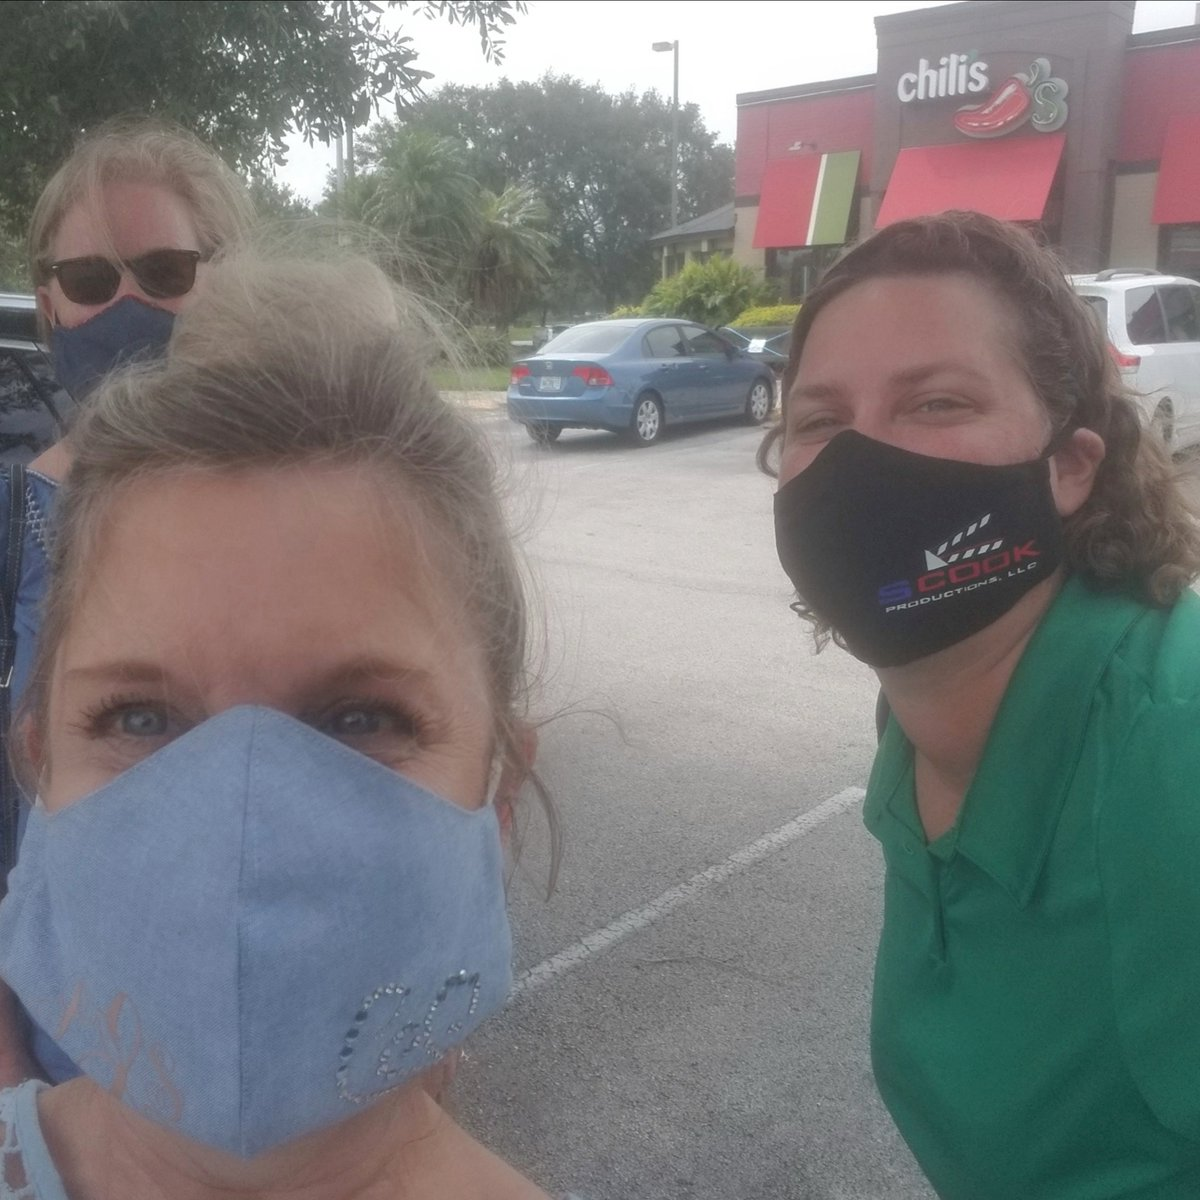 Doing another mask delivery & Lunchin' with the ladies today, safely! Fun time Stacey & Pam. #inthistogether #makingmasks #lunchladies #teamloftis #loftisproductionservices https://t.co/iFNBU9fvAX